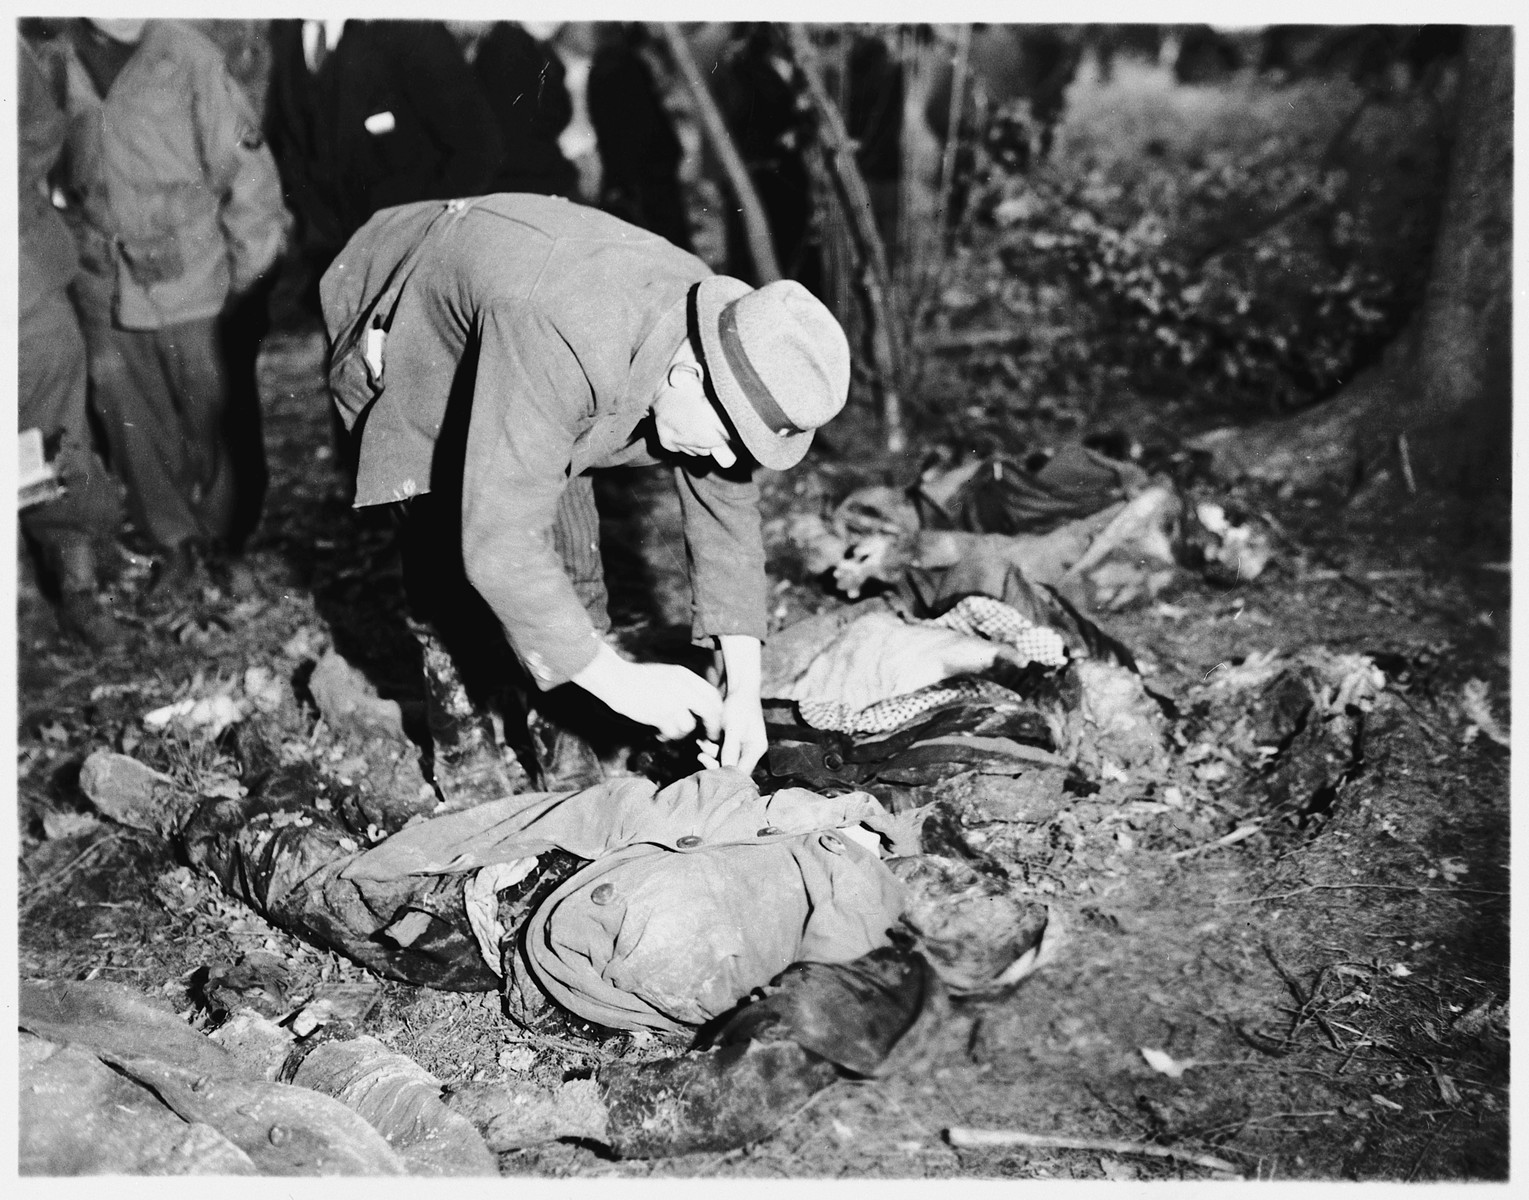 A man looks for identification papers on one of the 57 corpses of Russians, including women and one baby, exhumed from a mass grave near Suttrop.    The victims were forced to dig their own grave and then were shot by SS troops six weeks before the arrival of American troops.  On May 3, 1945, the 95th Infantry Division of the U.S. Ninth Army arrived in Suttrop and were informed by locals of the mass grave.  American troops forced the townspeople to exhume the grave after which Russian displaced persons in the area identified the bodies.  The victims were reburied in individual graves, and a U.S. Army chaplain conducted burial services.  Russians remaining in the area placed wreaths on the graves.